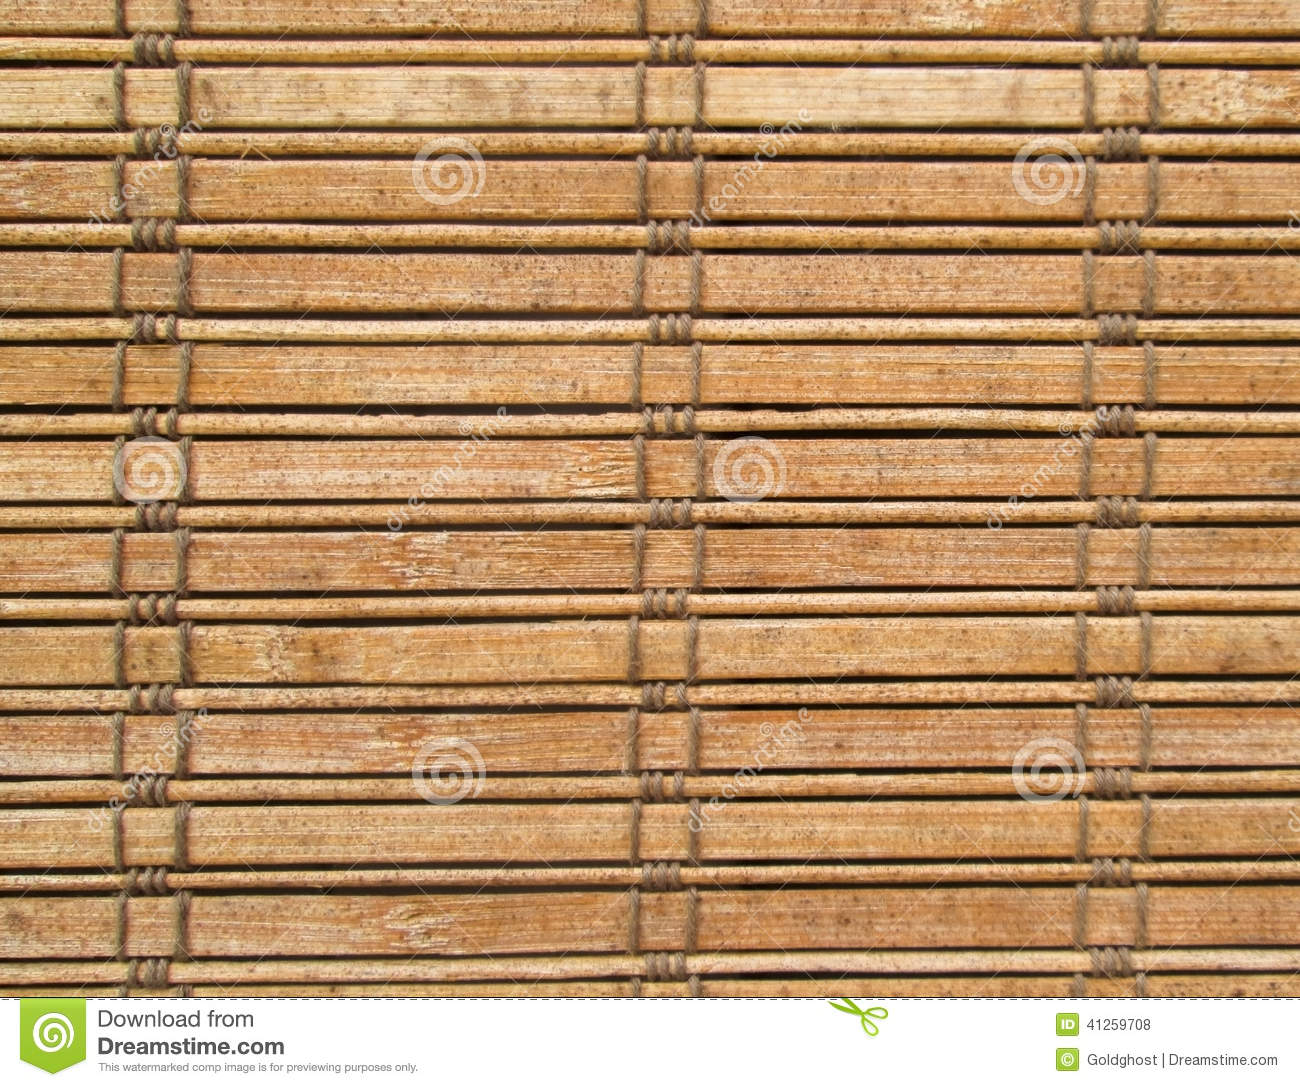 Bamboo Blinds Texture Images